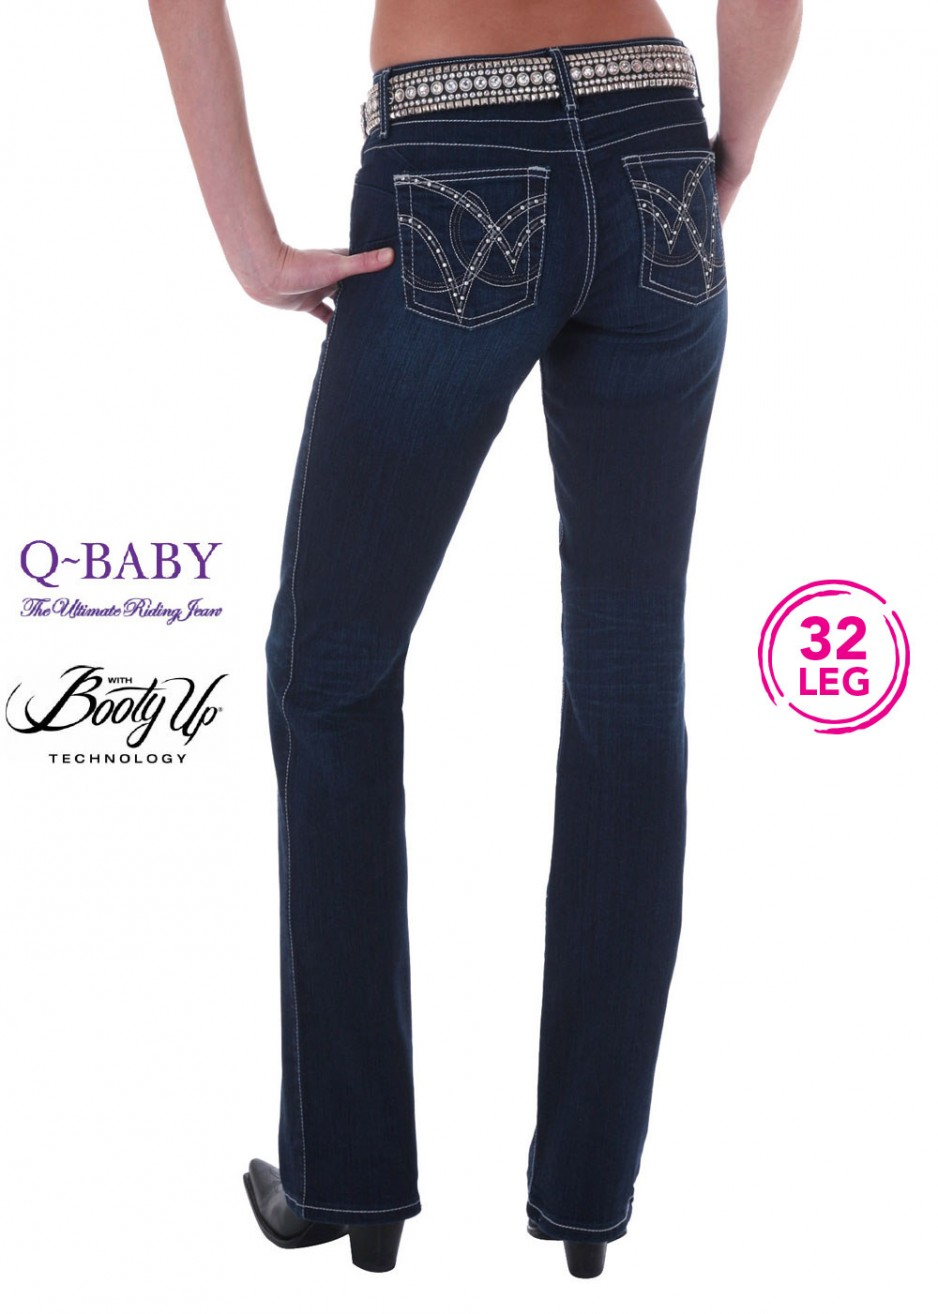 WOMENS ULTIMATE RIDING JEAN - QBABY B/UP